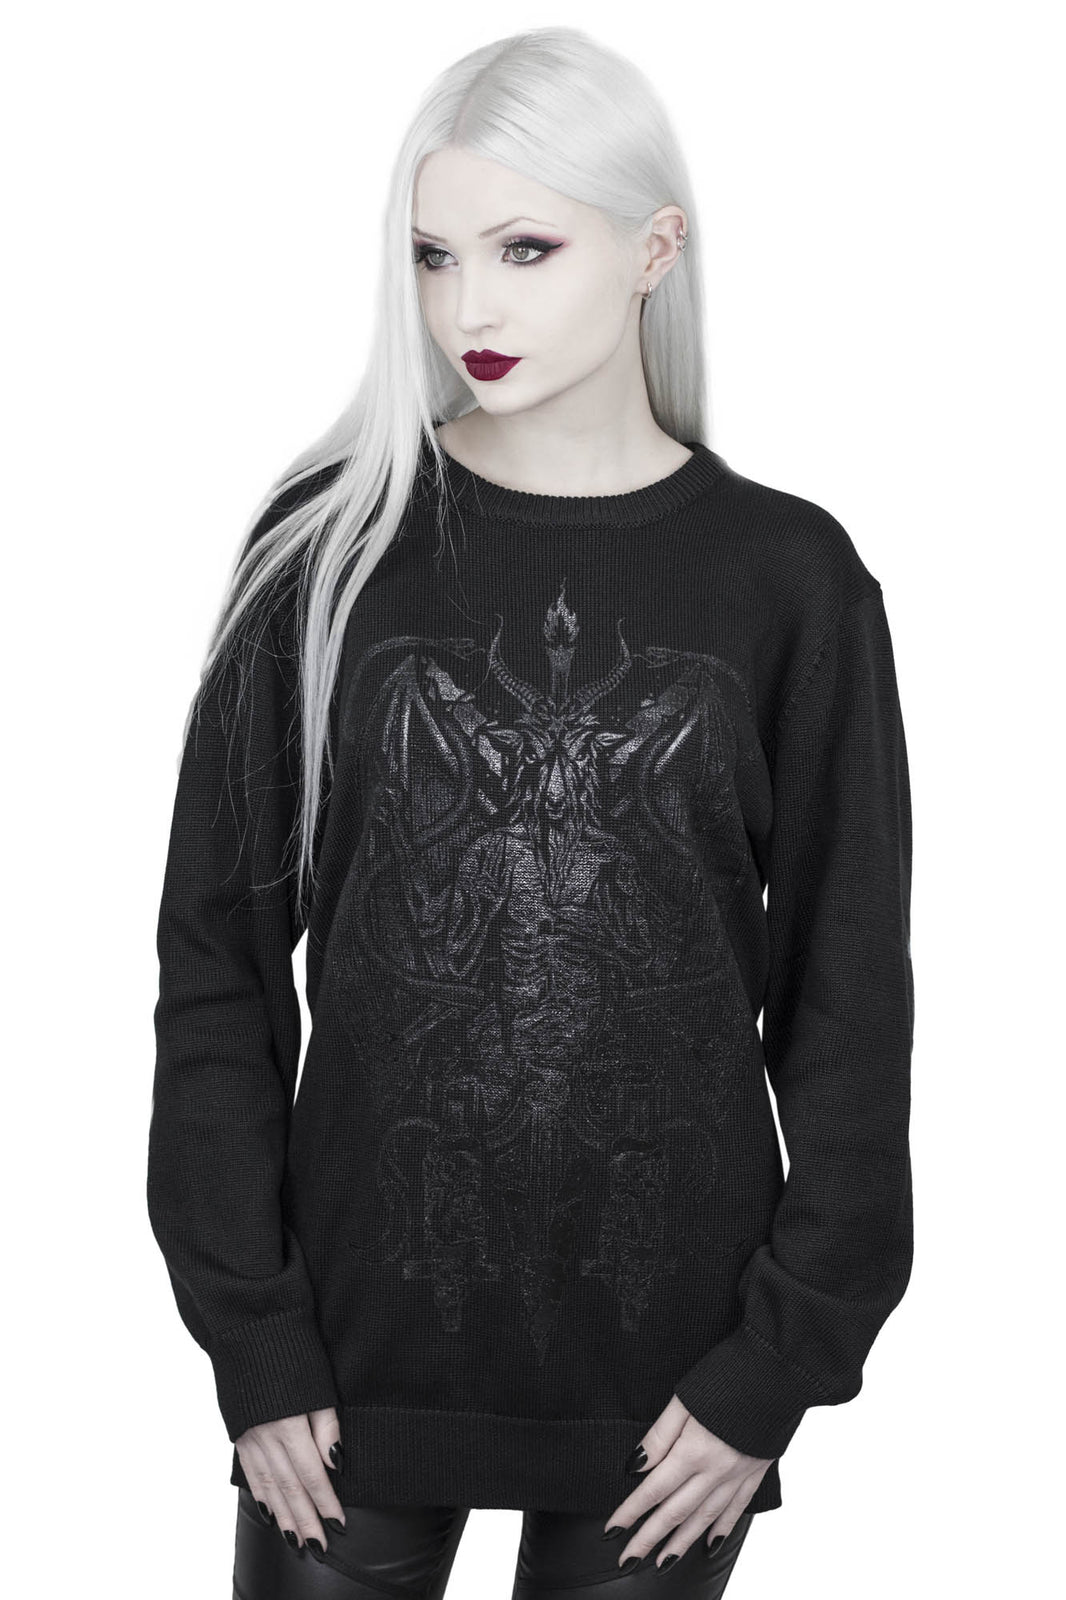 Dark Prince Knit Sweater